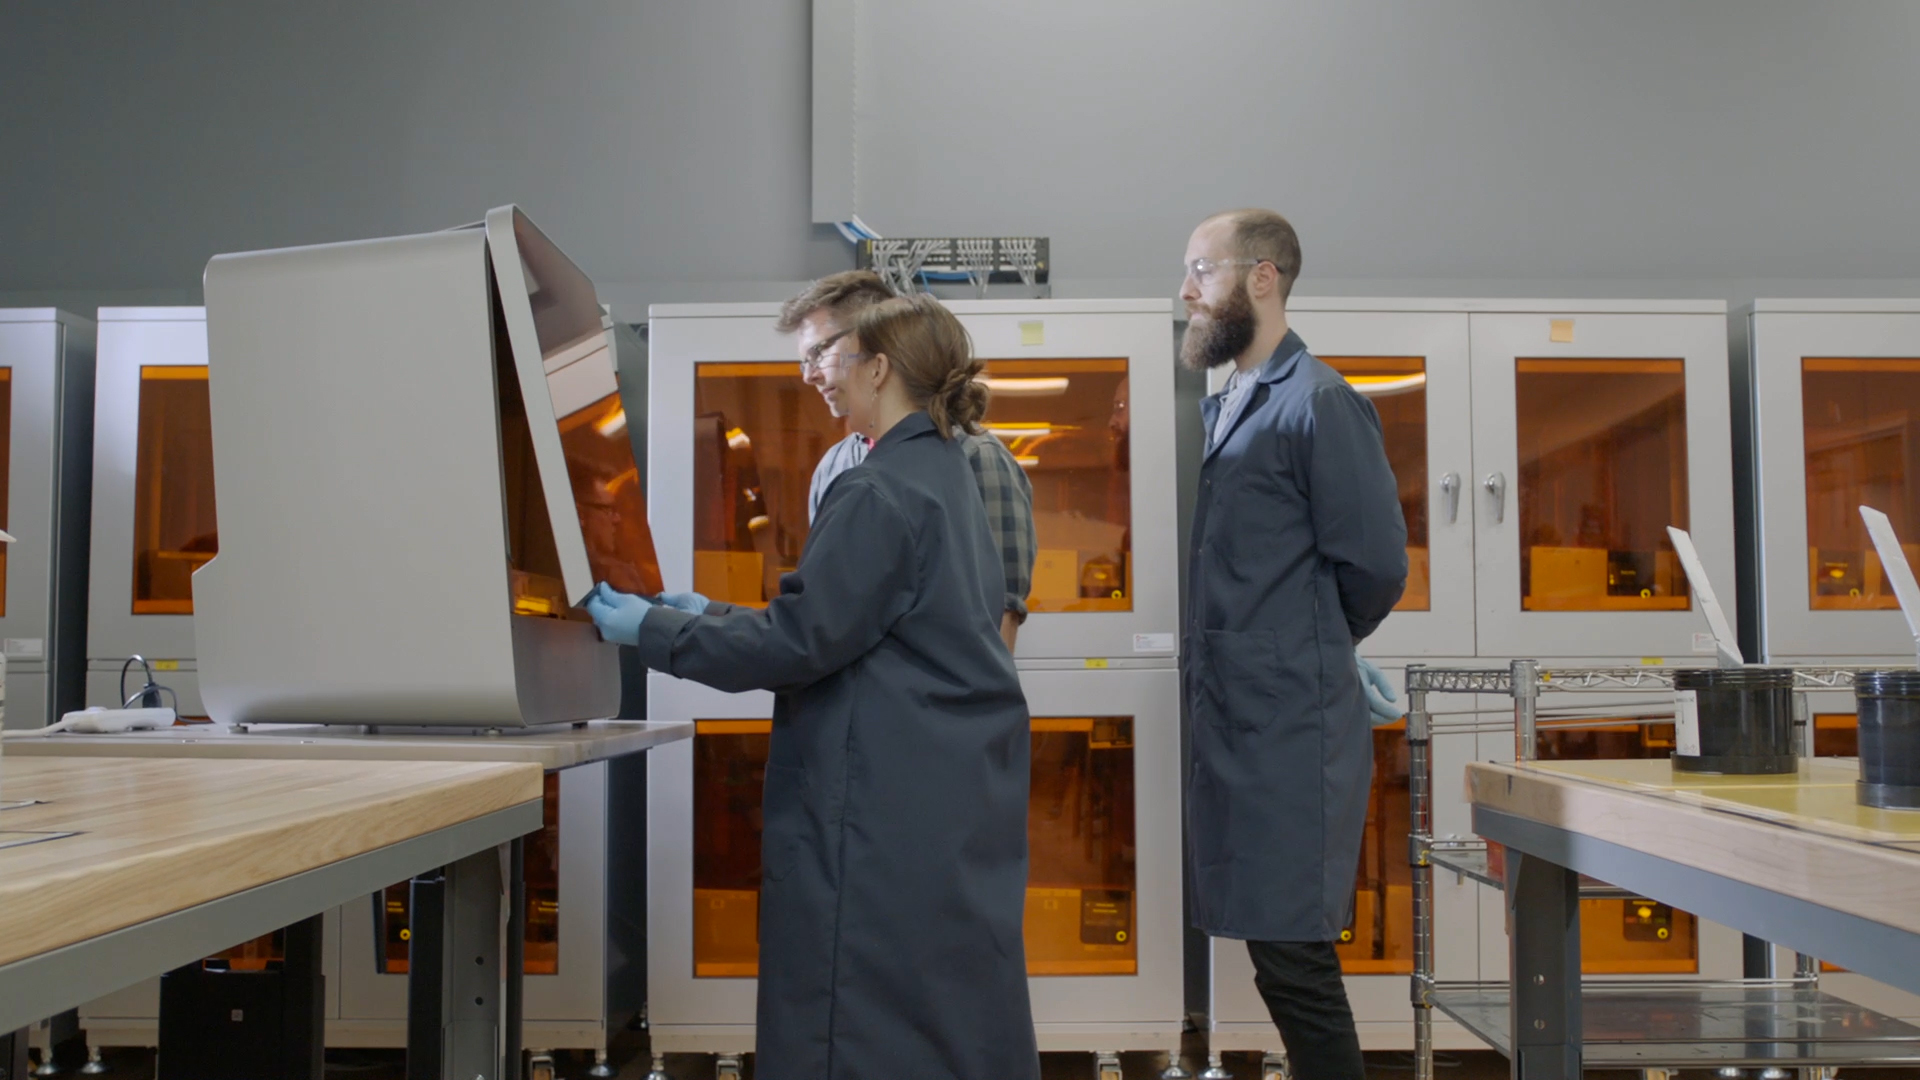 How Universal Robots powers 24/7 3D printing for production